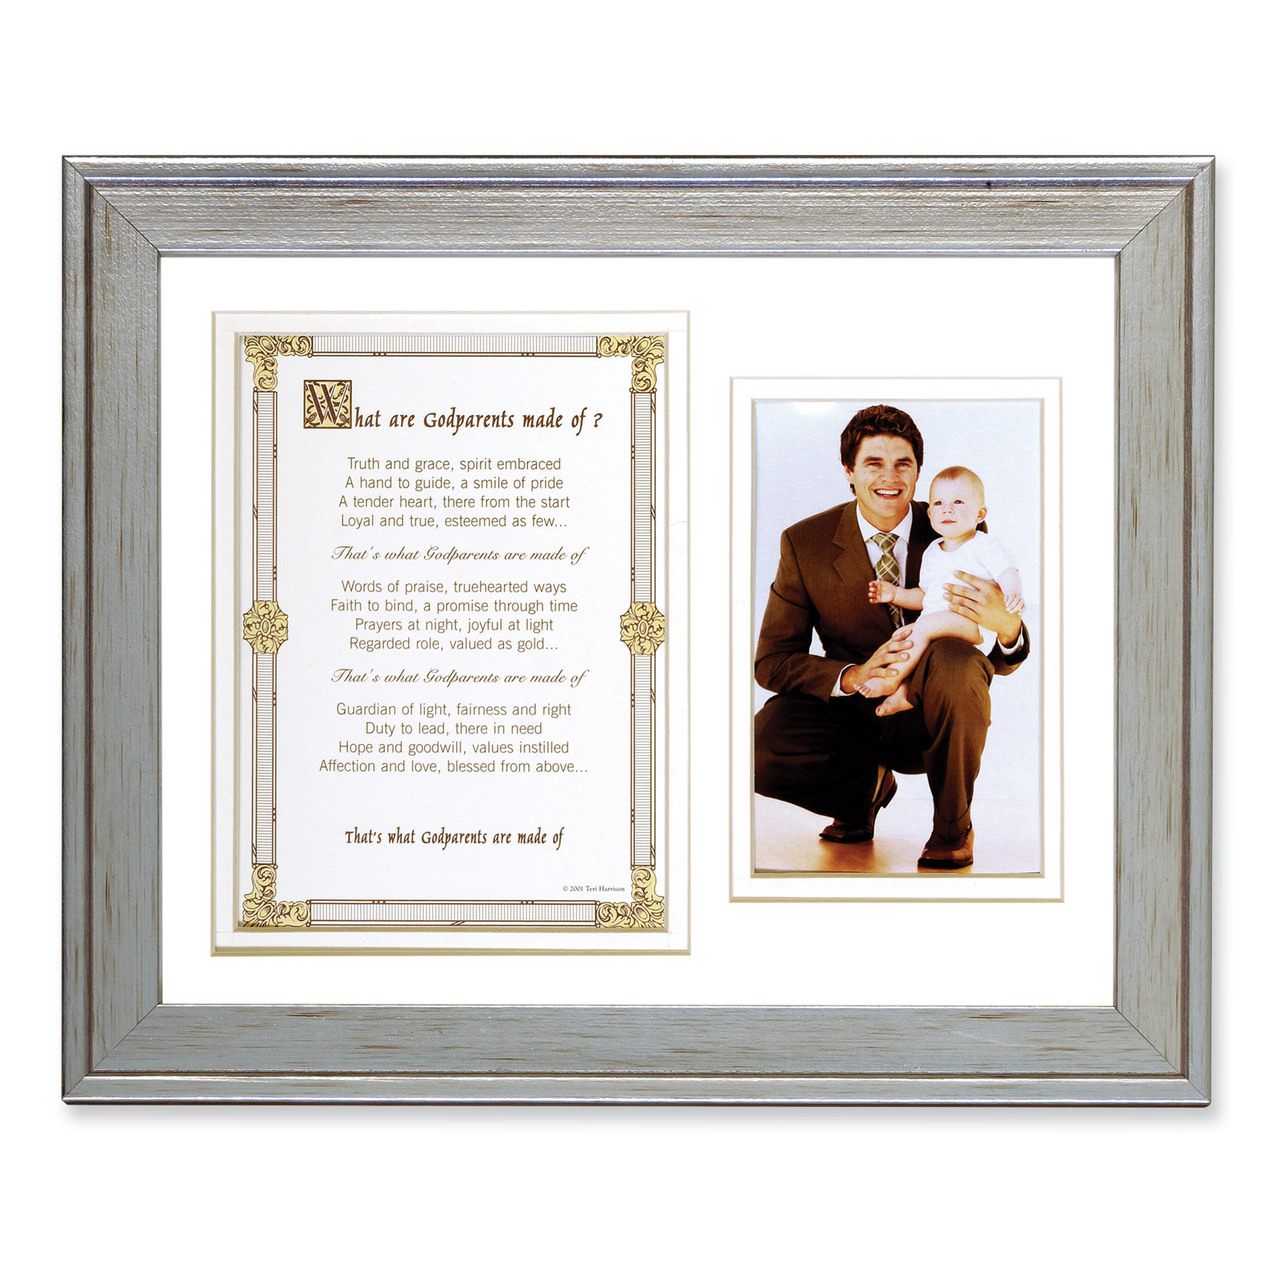 What Are Godparents Made of Poem and 8 x 10 Inch Picture Frame ...